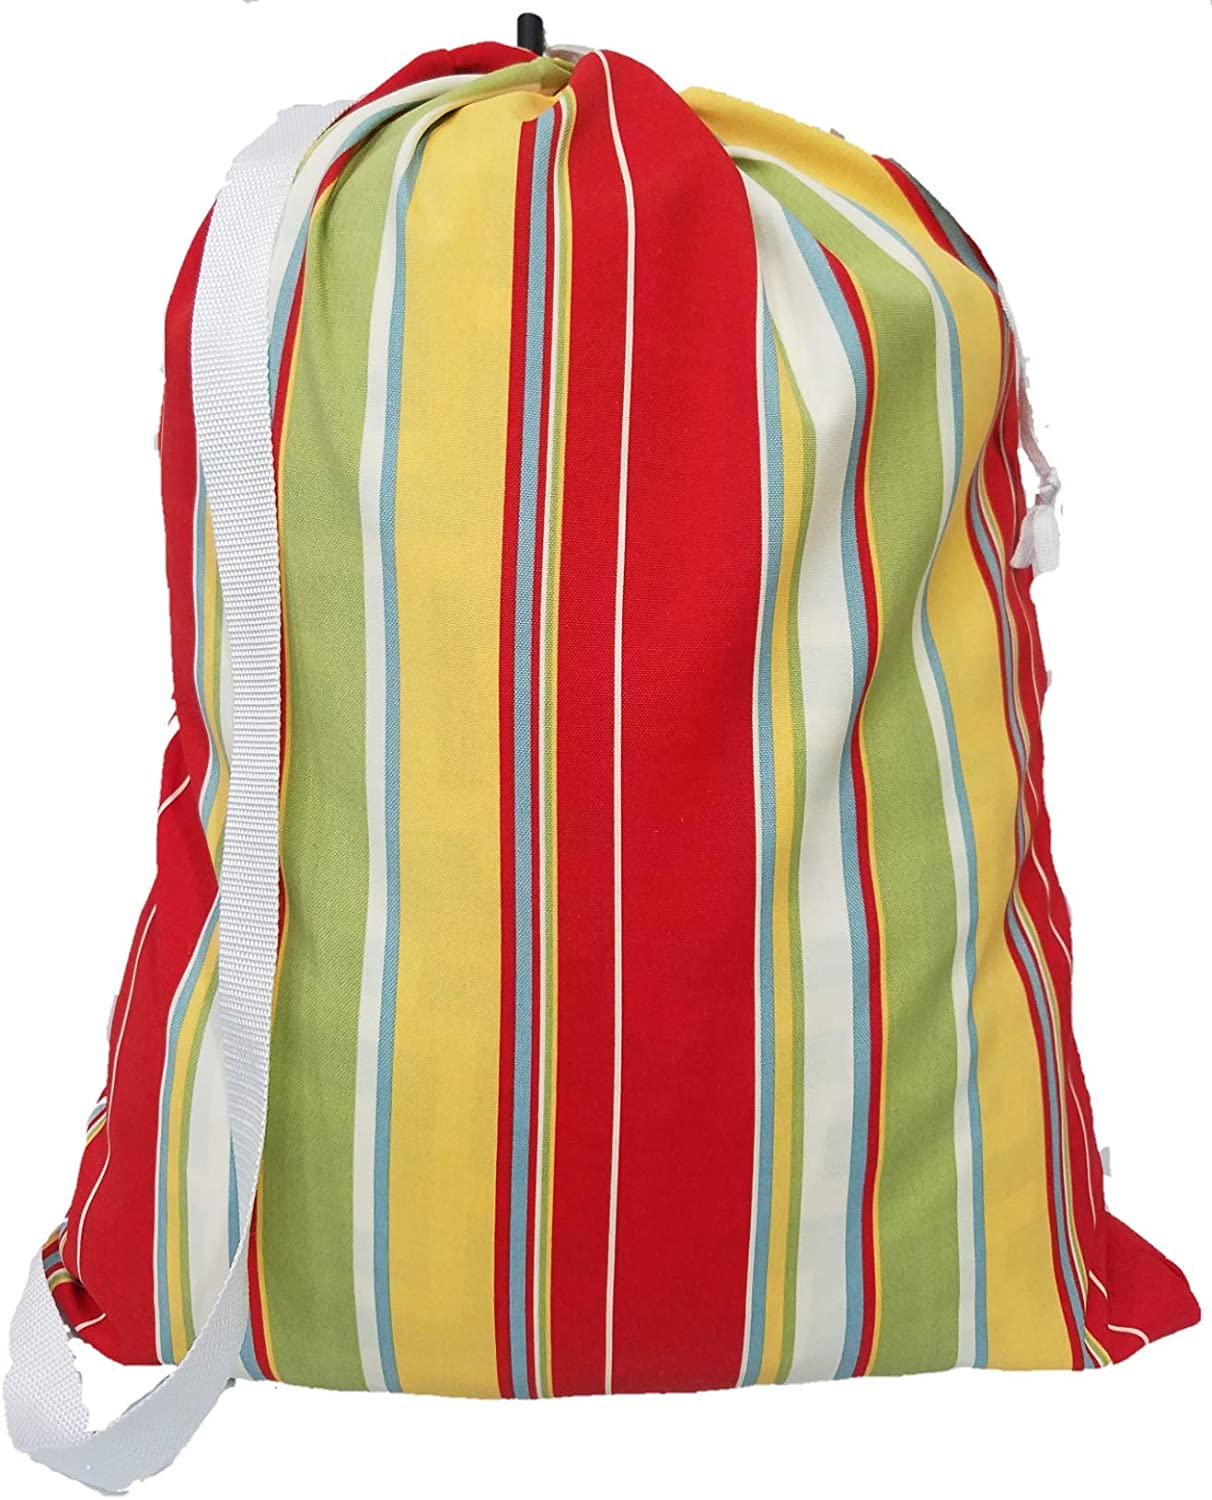 """Owen Sewn Summer Stripe Polyester Laundry Bag 22""""x28"""" with Shoulder Strap - Made in USA"""